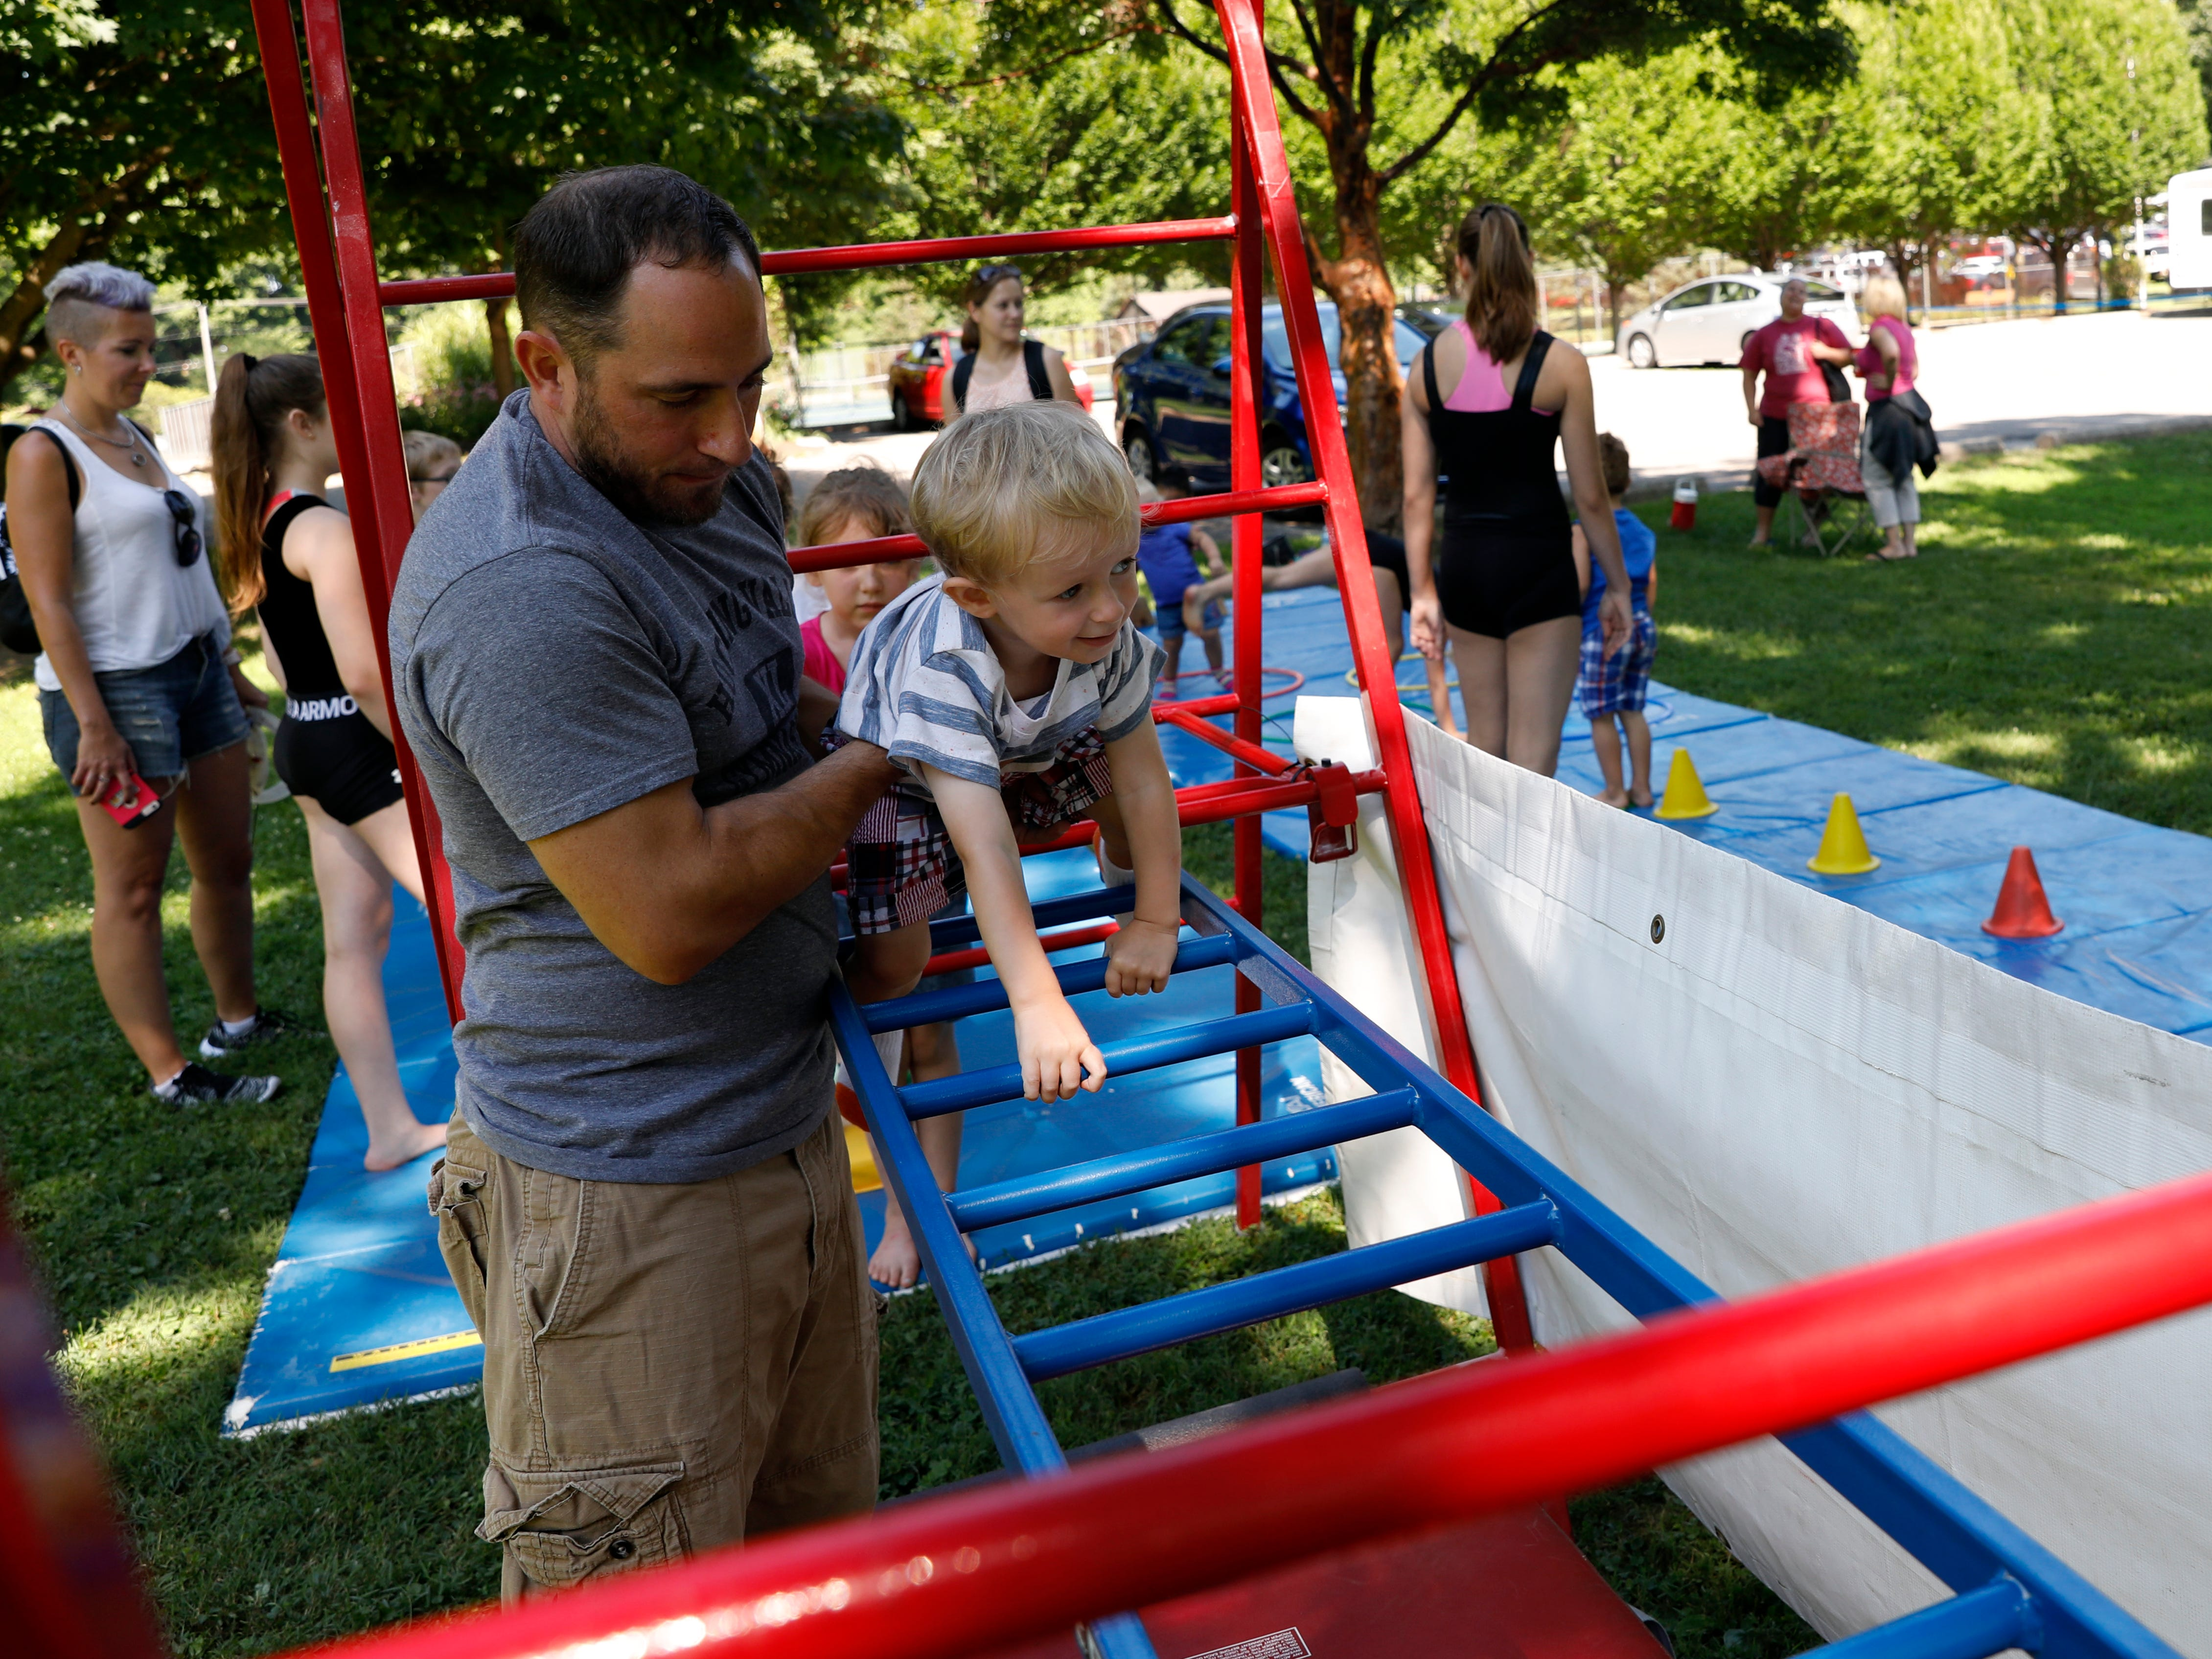 Maddox Wood, 1, crawls across a ladder with the help of Dick Huntwork, from Hocking Valley Youth Sports Center, Thursday, July 26, 2018, at Rising Park in Lancaster. Hundreds of children came to the park to experience Rising Park Day as part of the Lancaster Festival.